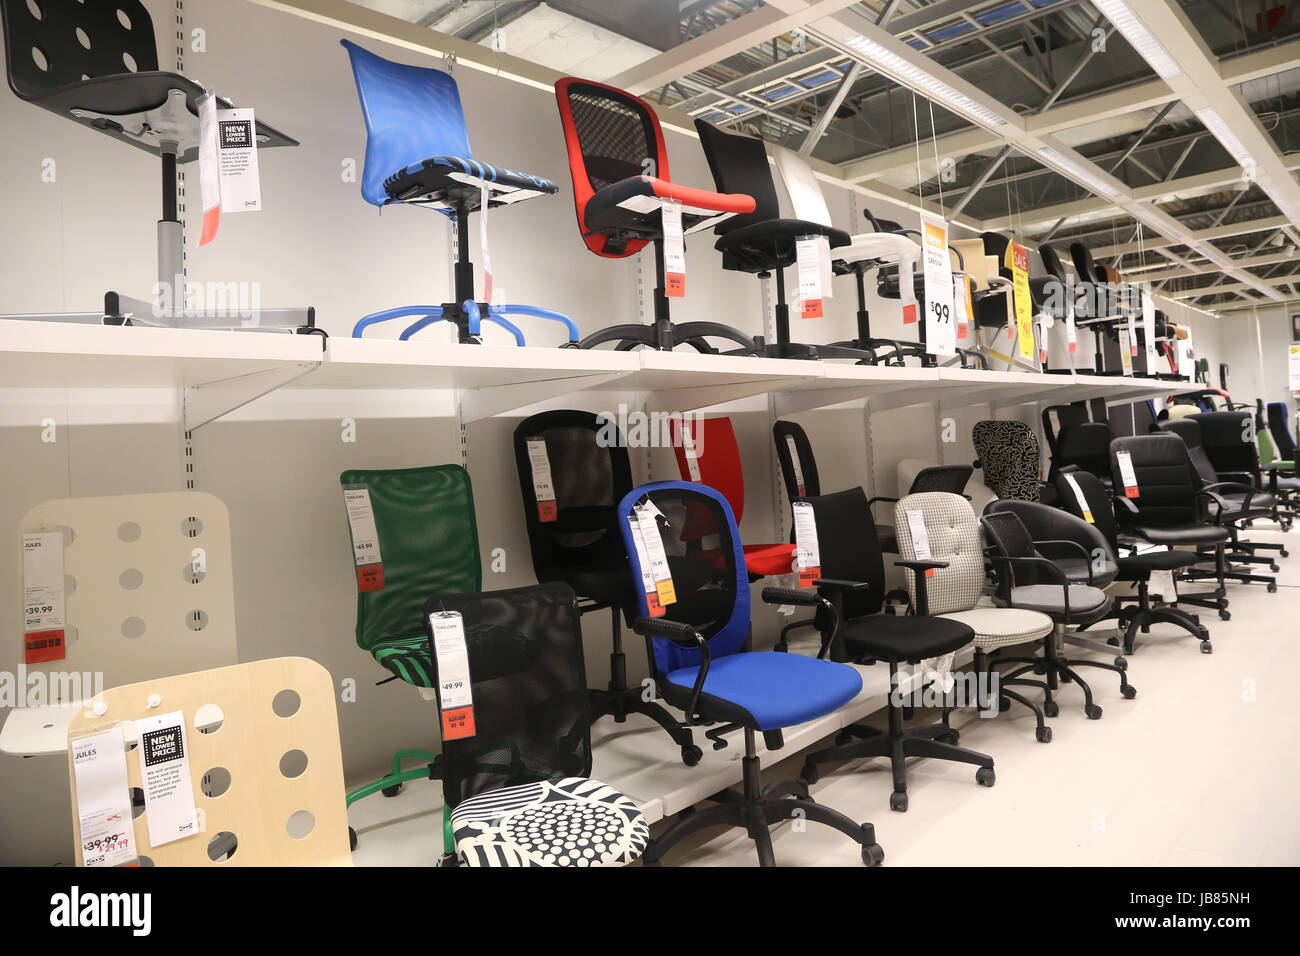 ikea office chairs canada. Simple Canada Coquitlam  December 18 Display Furniture With Office Chair Set Of IKEA  Store On 18 2013 In BC Canada To Ikea Office Chairs Canada A